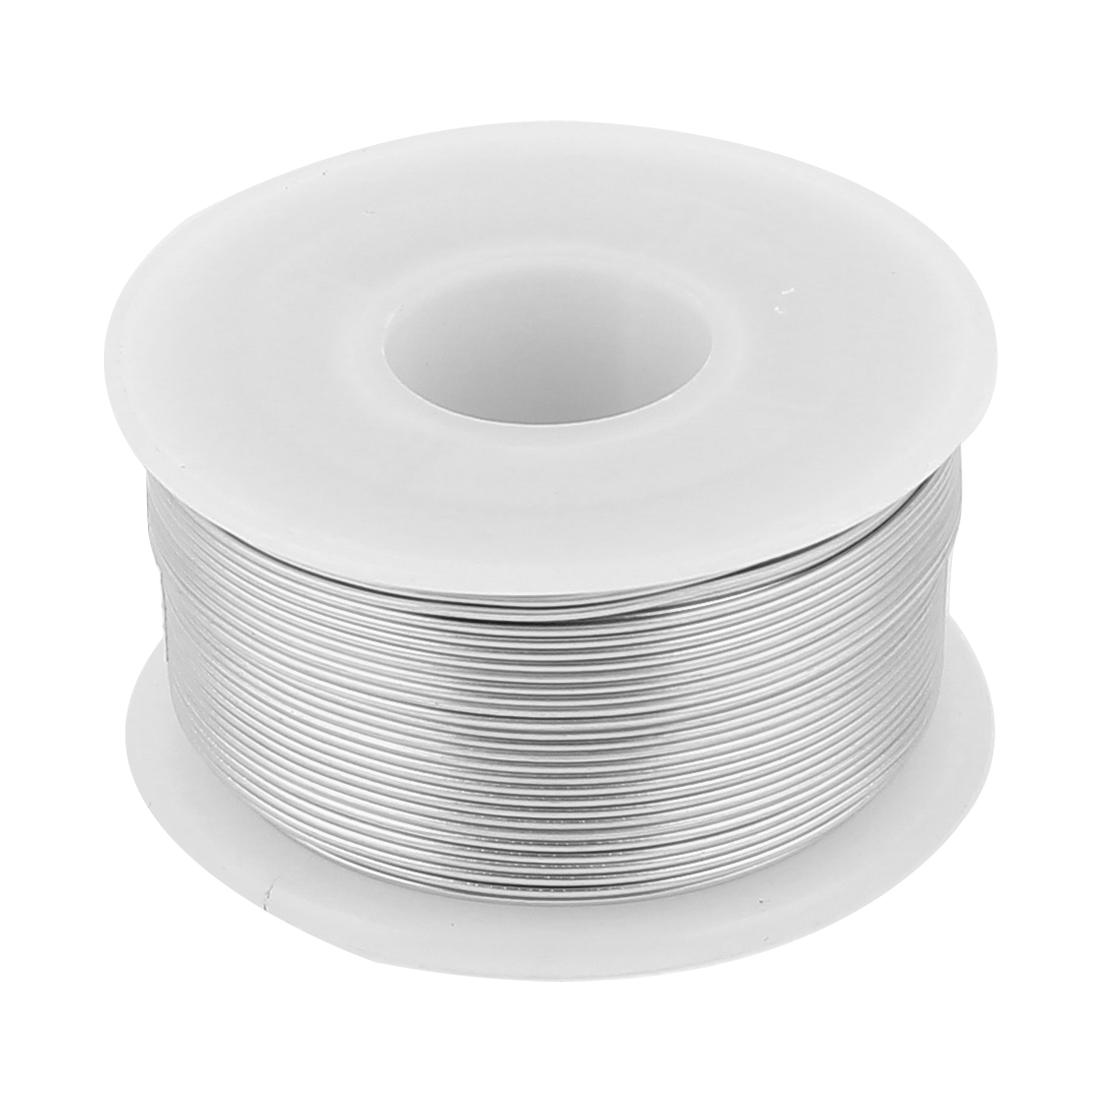 0.8mm 100G Lead Free Rosin Core 1.8% Soldering Solder Wire for Electrical Soldering